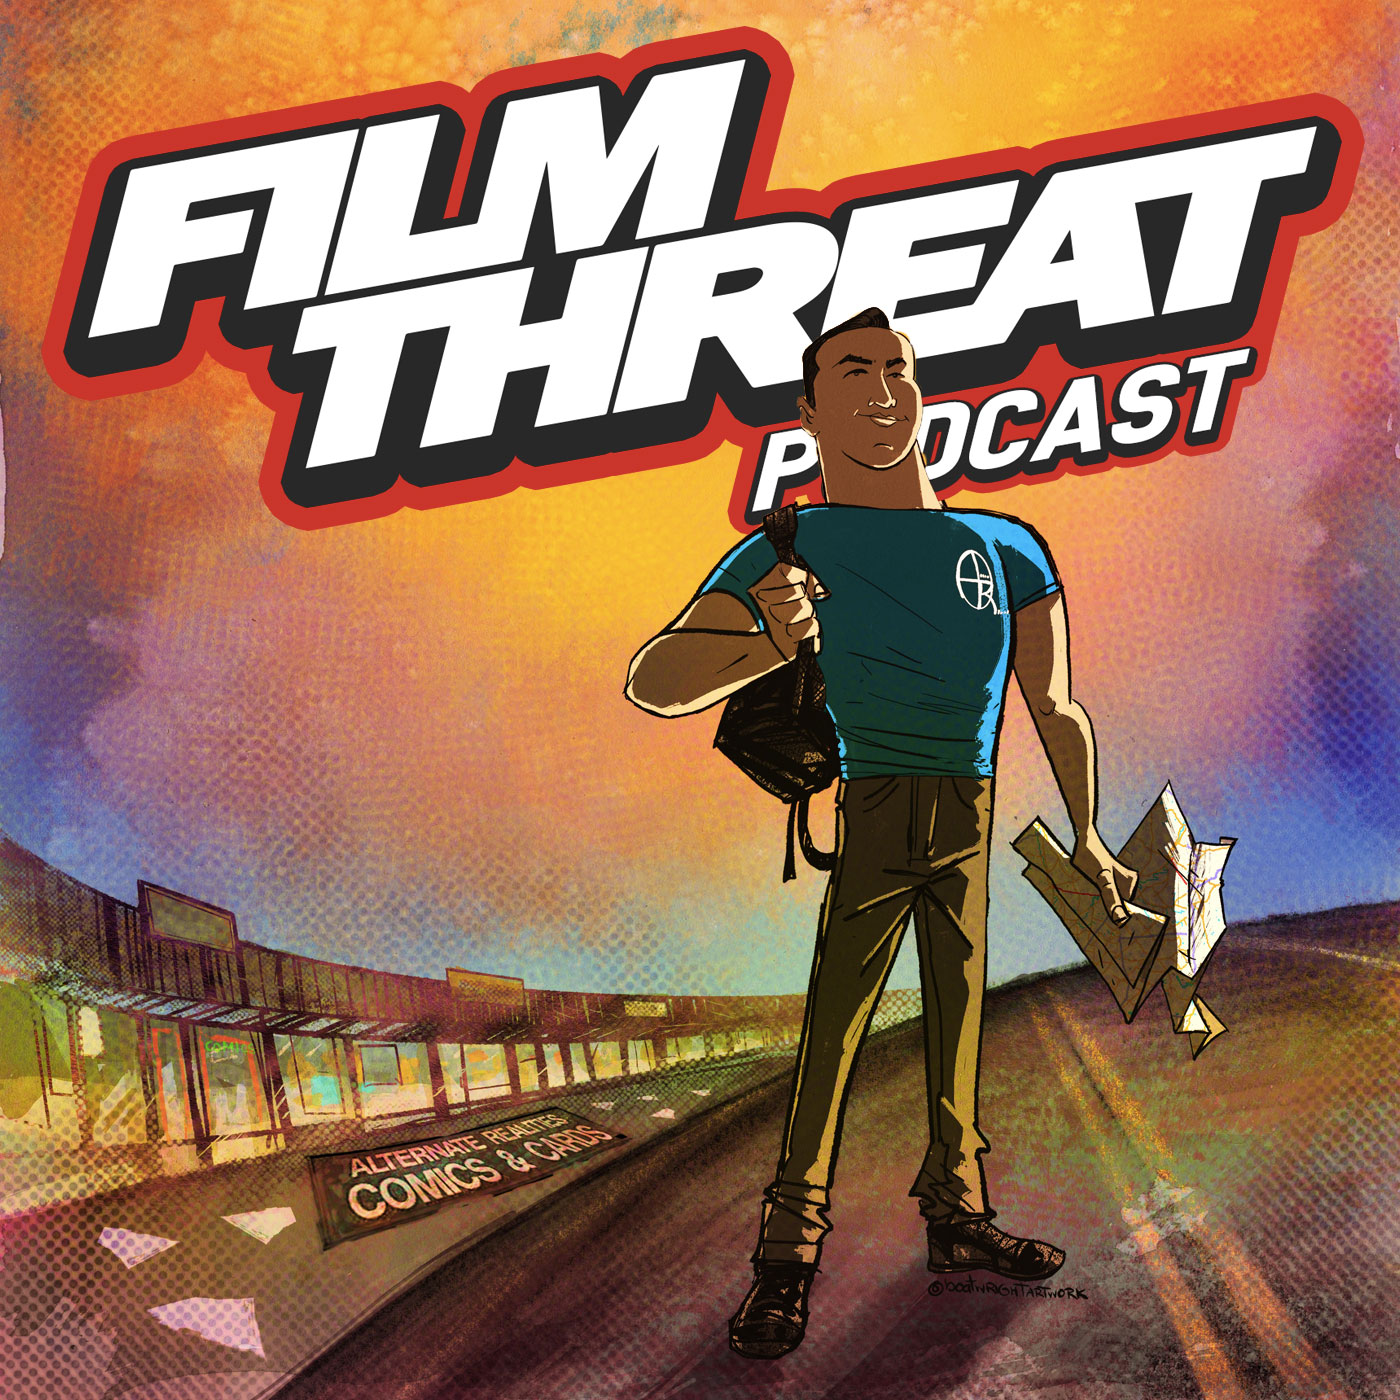 Podcast episode image